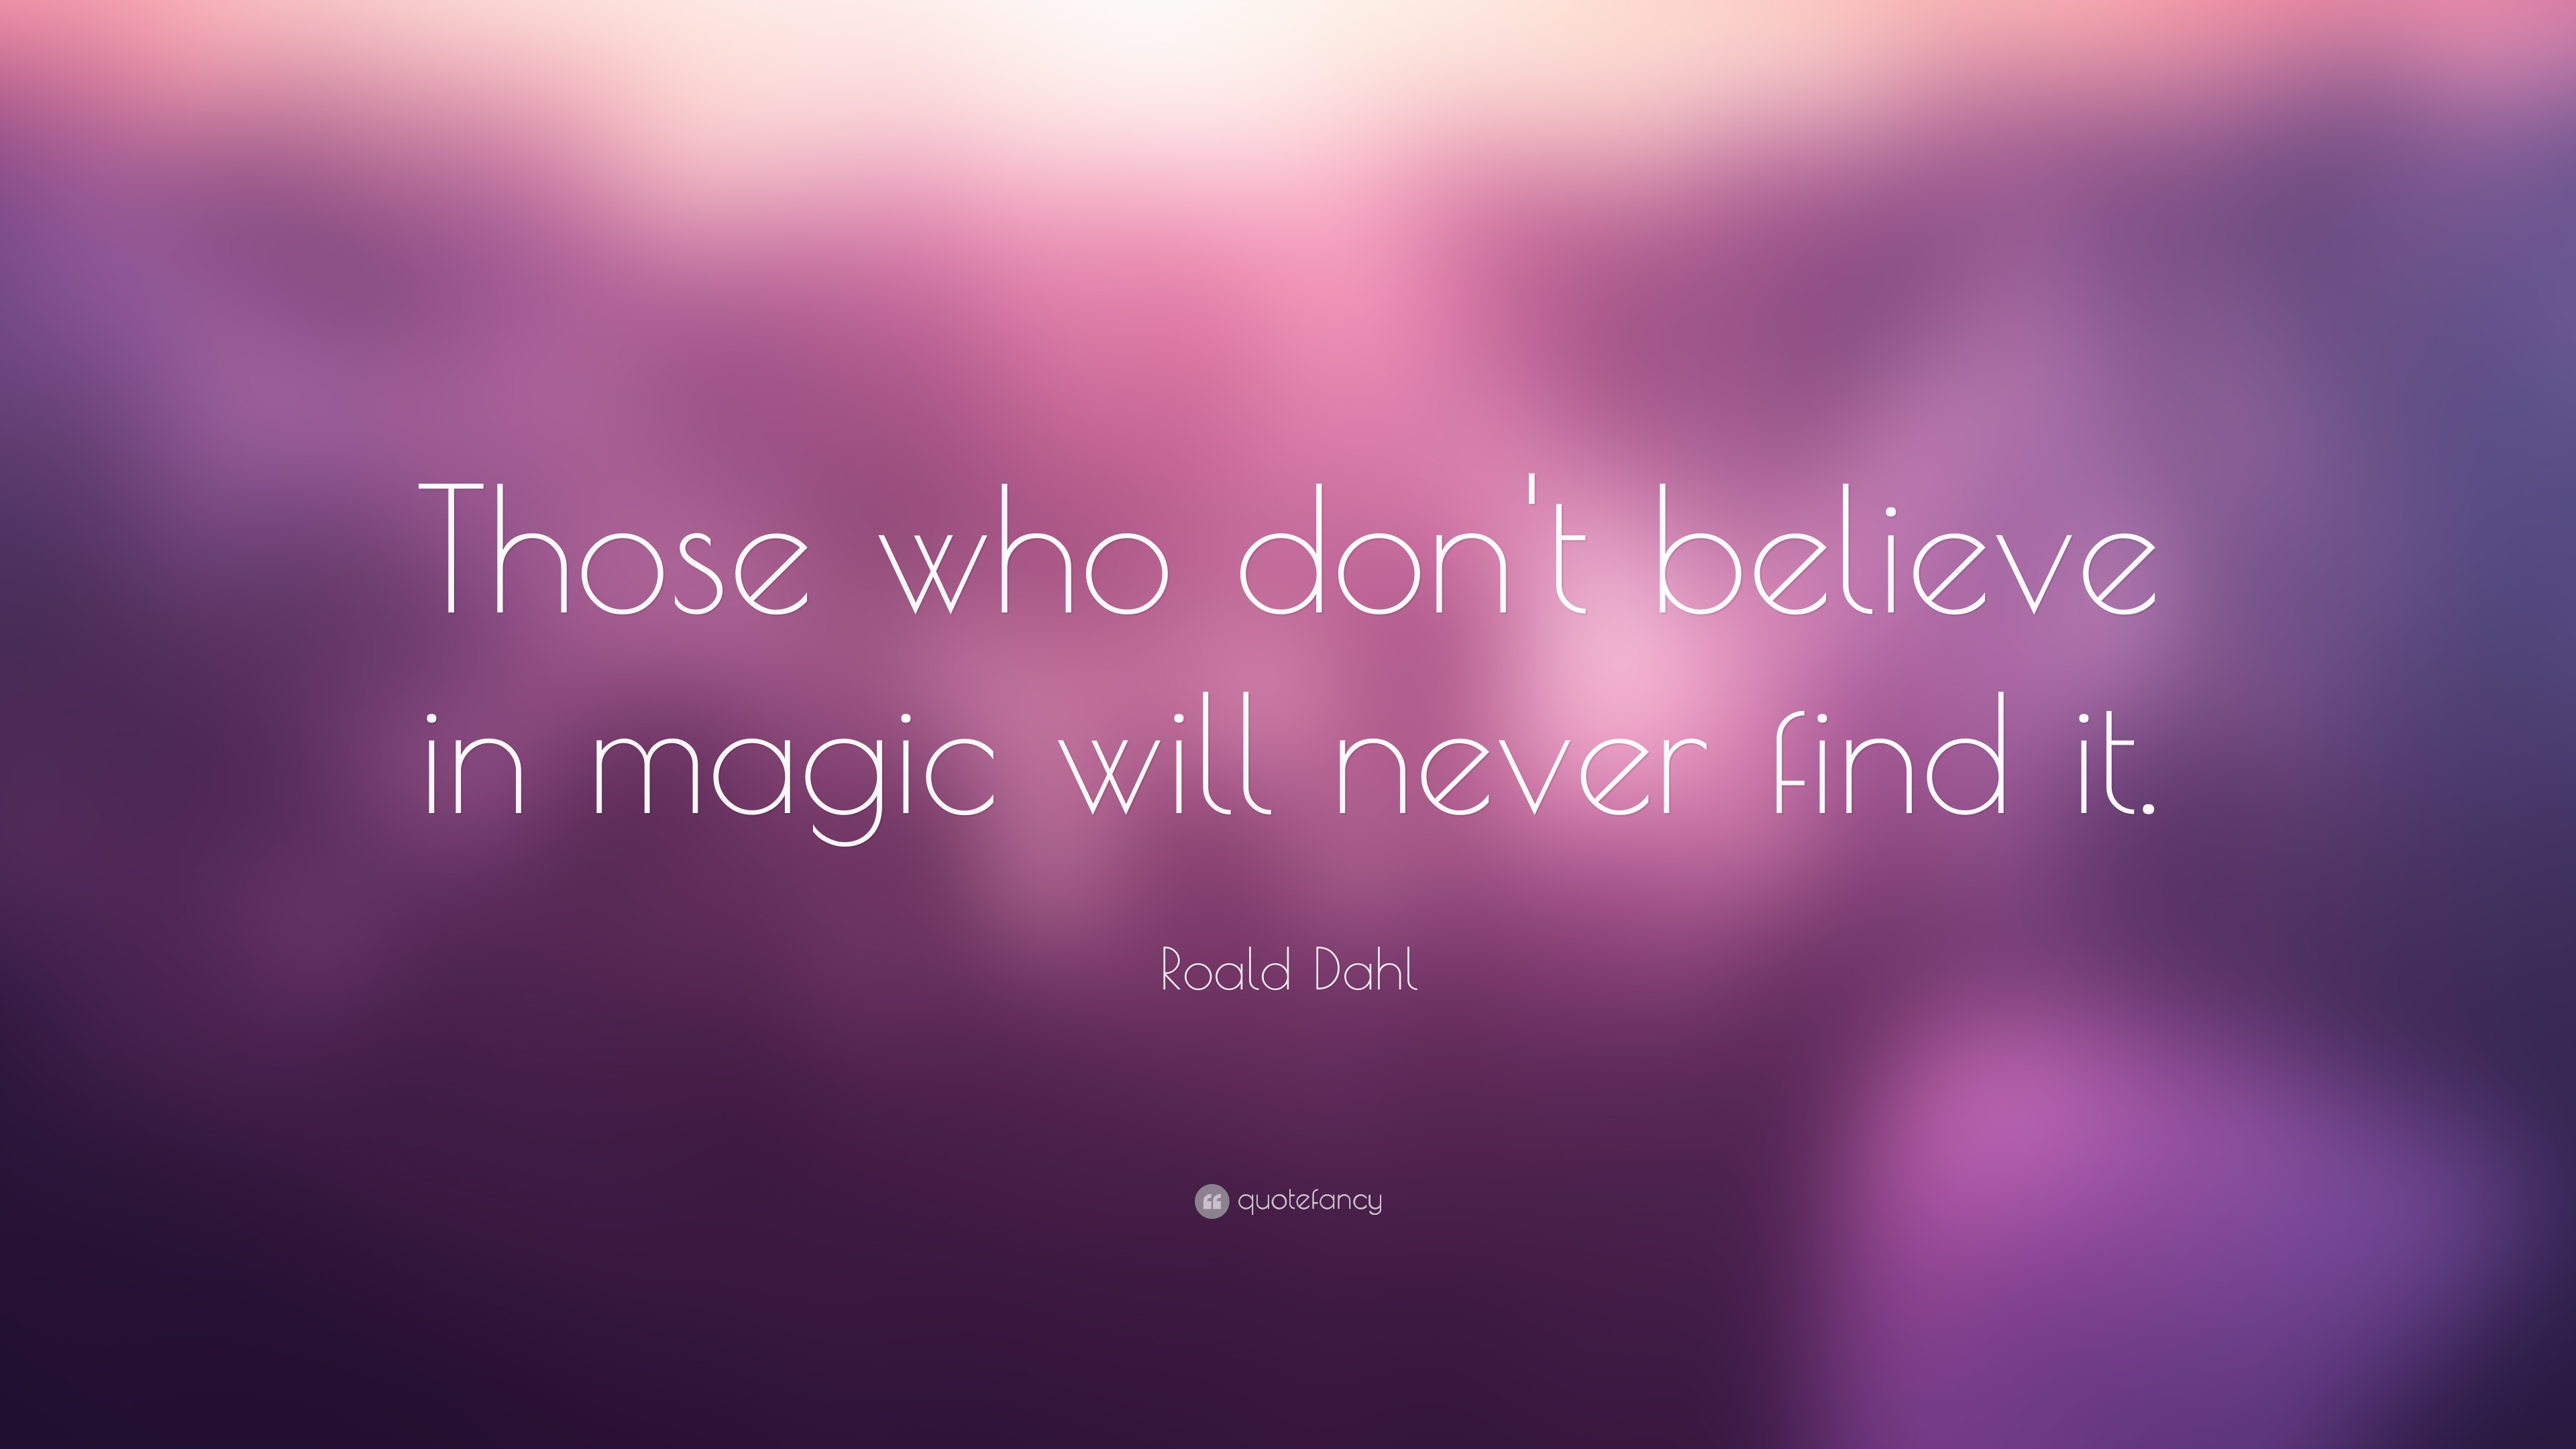 Roald Dahl Quotes Wallpaper Roald Dahl Quote Those Who Don T Believe In Magic Will